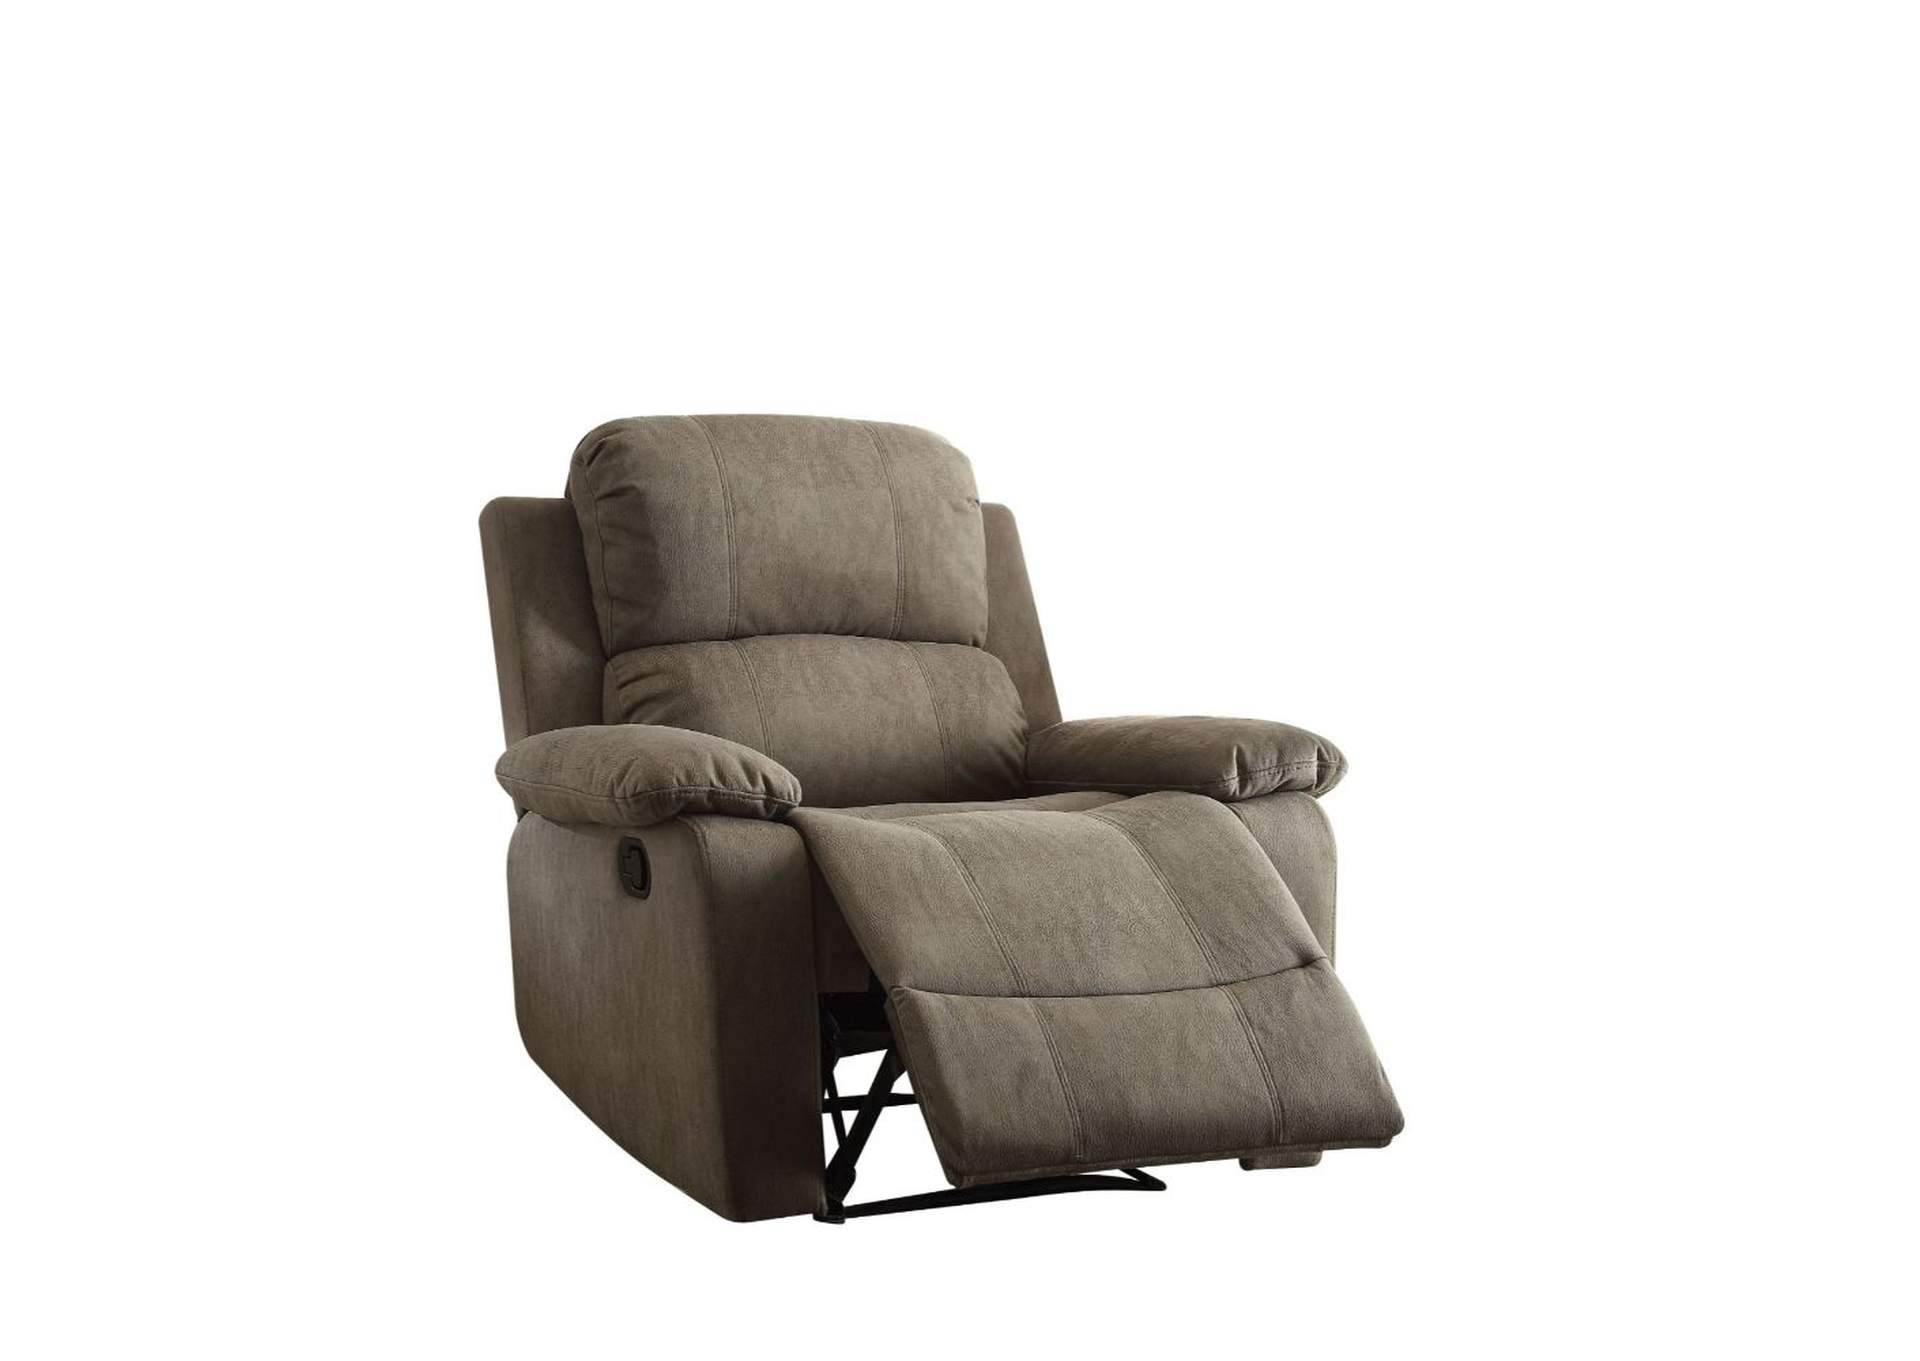 Bina Gray Recliner,Acme